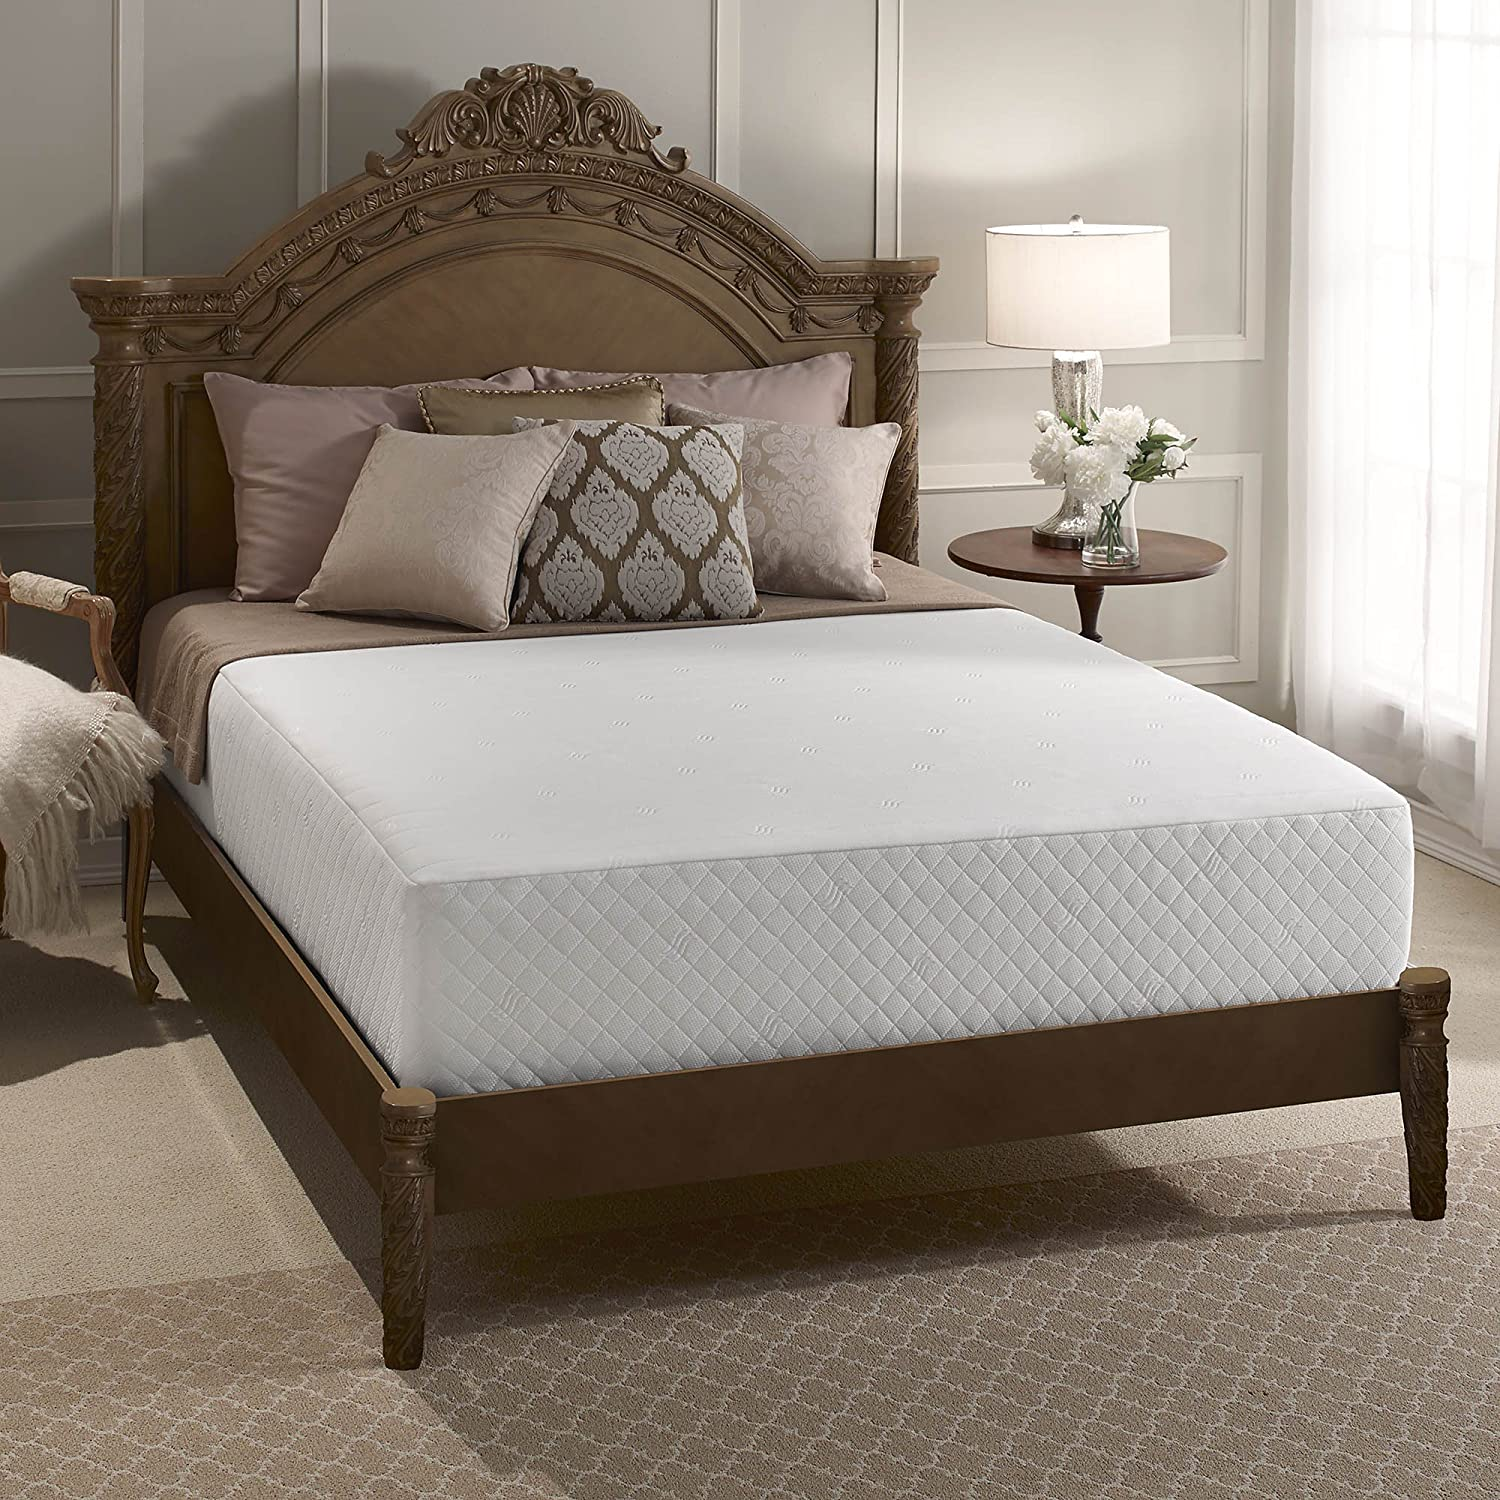 Serta 12-inch Gel-Memory Foam Mattress - Best Mattress for Side Sleepers